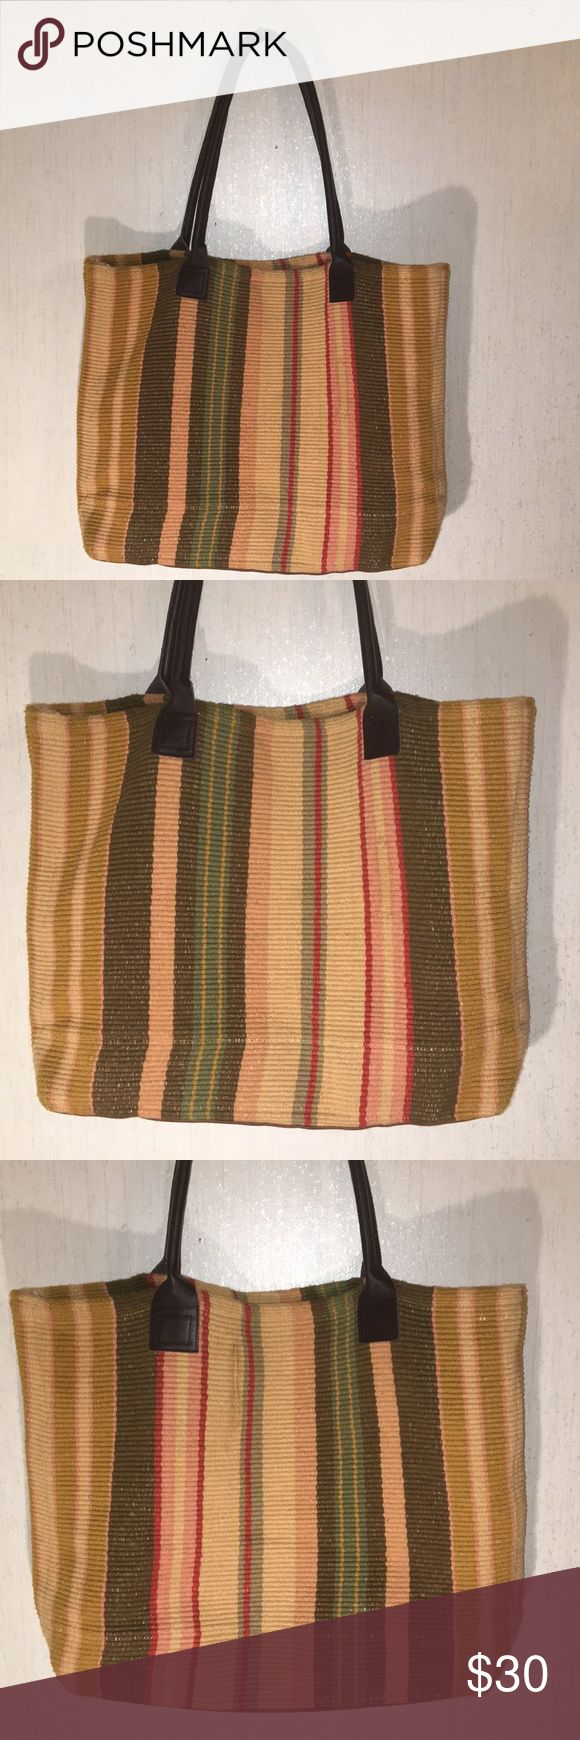 """DASH & ALBERT Large Multi-Colored Tote Bag DASH & ALBERT Large Multi-Colored Tote Bag Very good used condition no stains rips or holes  This is a great bag! It is about 21"""" across, about 17 1/2"""" in height, and about 3"""" in depth. Dash & Albert Bags Totes"""